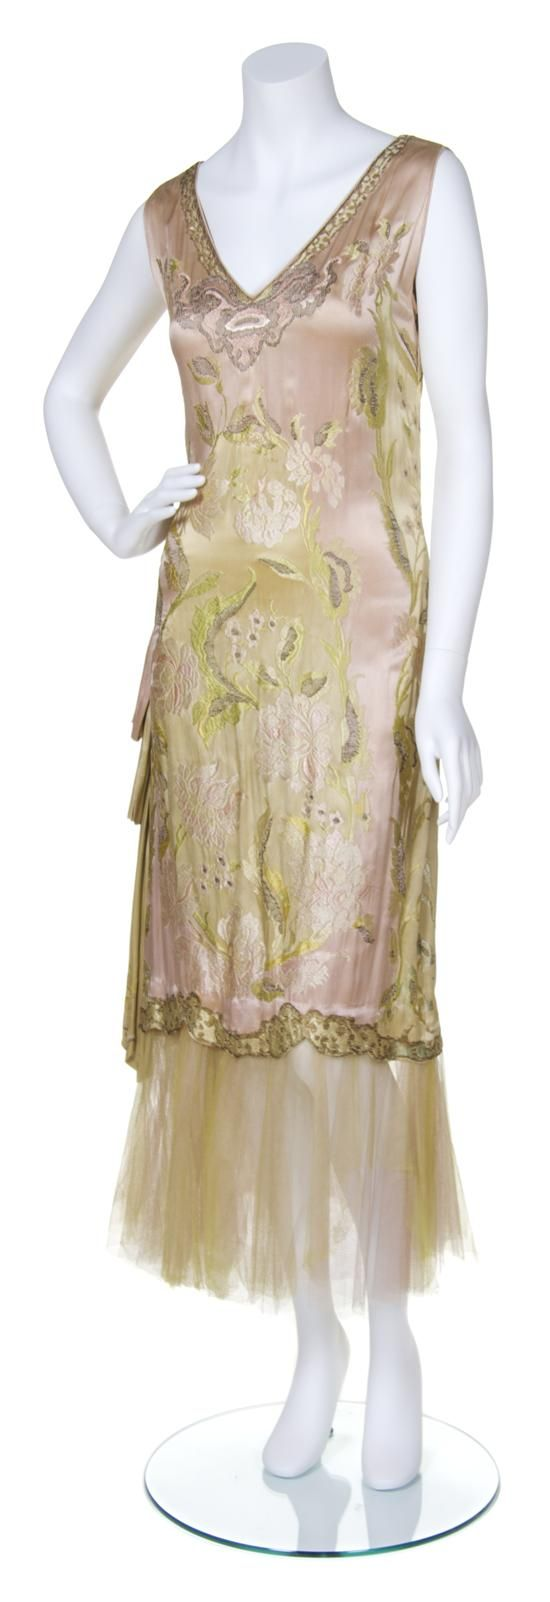 A Pink and Green Silk Embroidered Dress,   circa 1923,   attributed to Callot Soeurs, pink silk ground with allover foliate embroidery, pink and green tulle trim around bottom